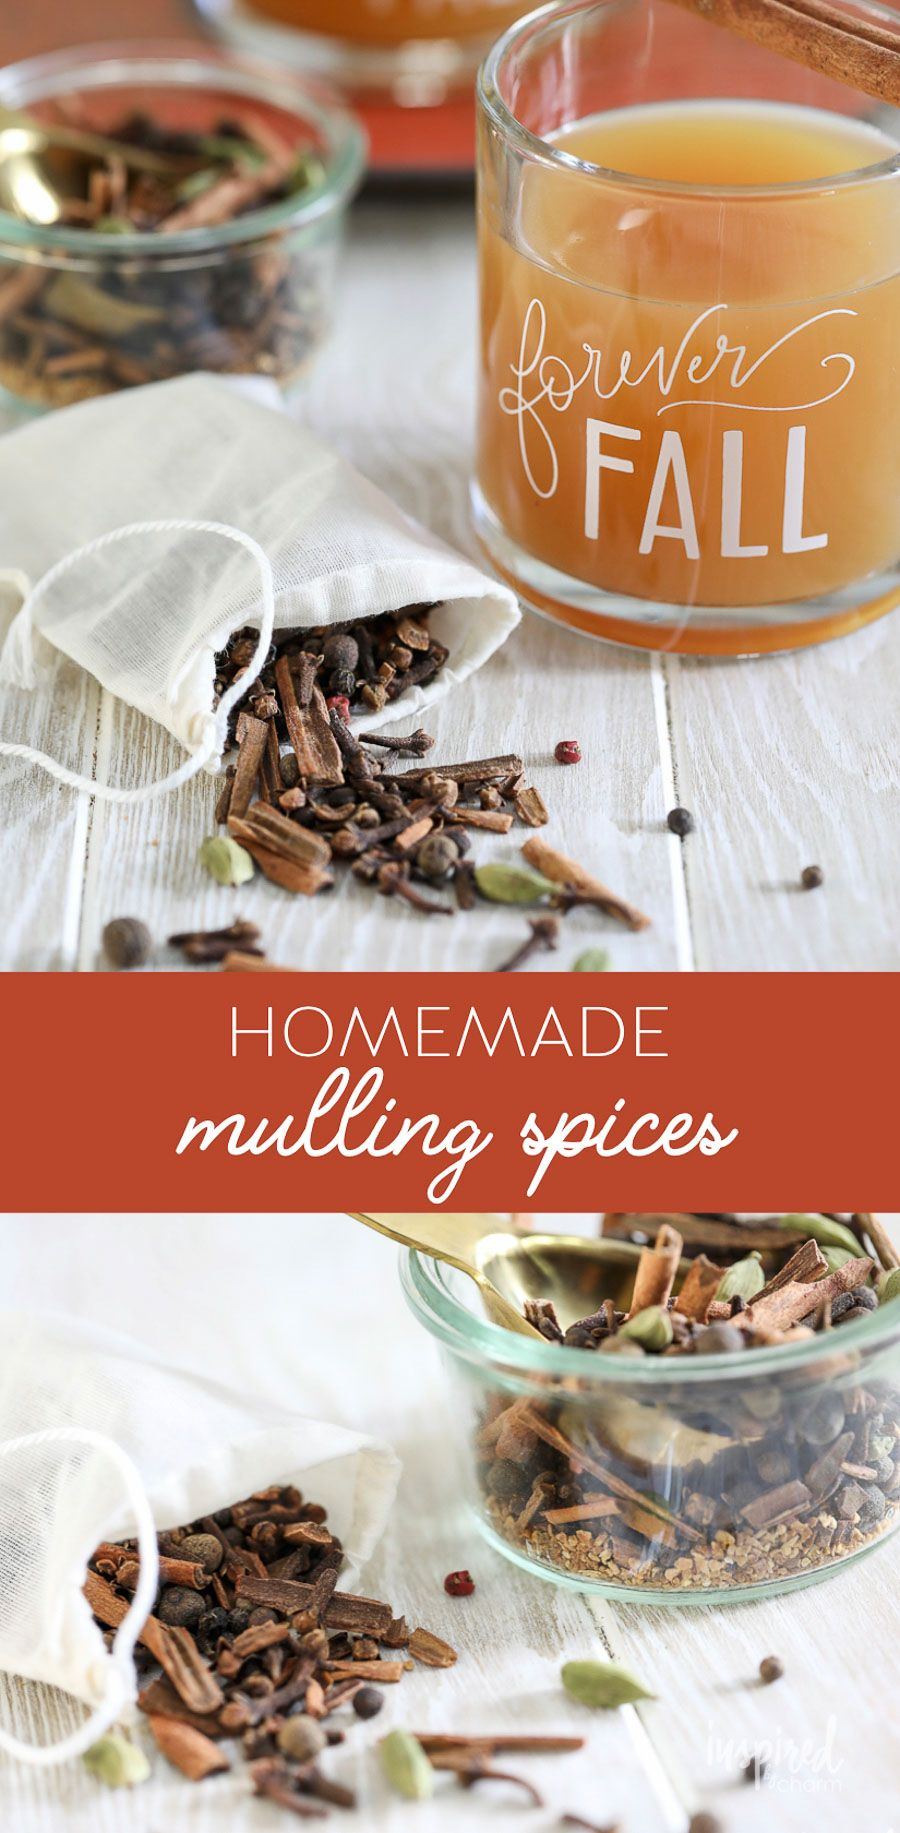 Homemade Mulling Spices For Apple Cider And Mulled Wine Mulling Spices Apple Cider Mu Homemade Mulling Spice Recipe Mulled Wine Recipe Mulled Cider Recipe